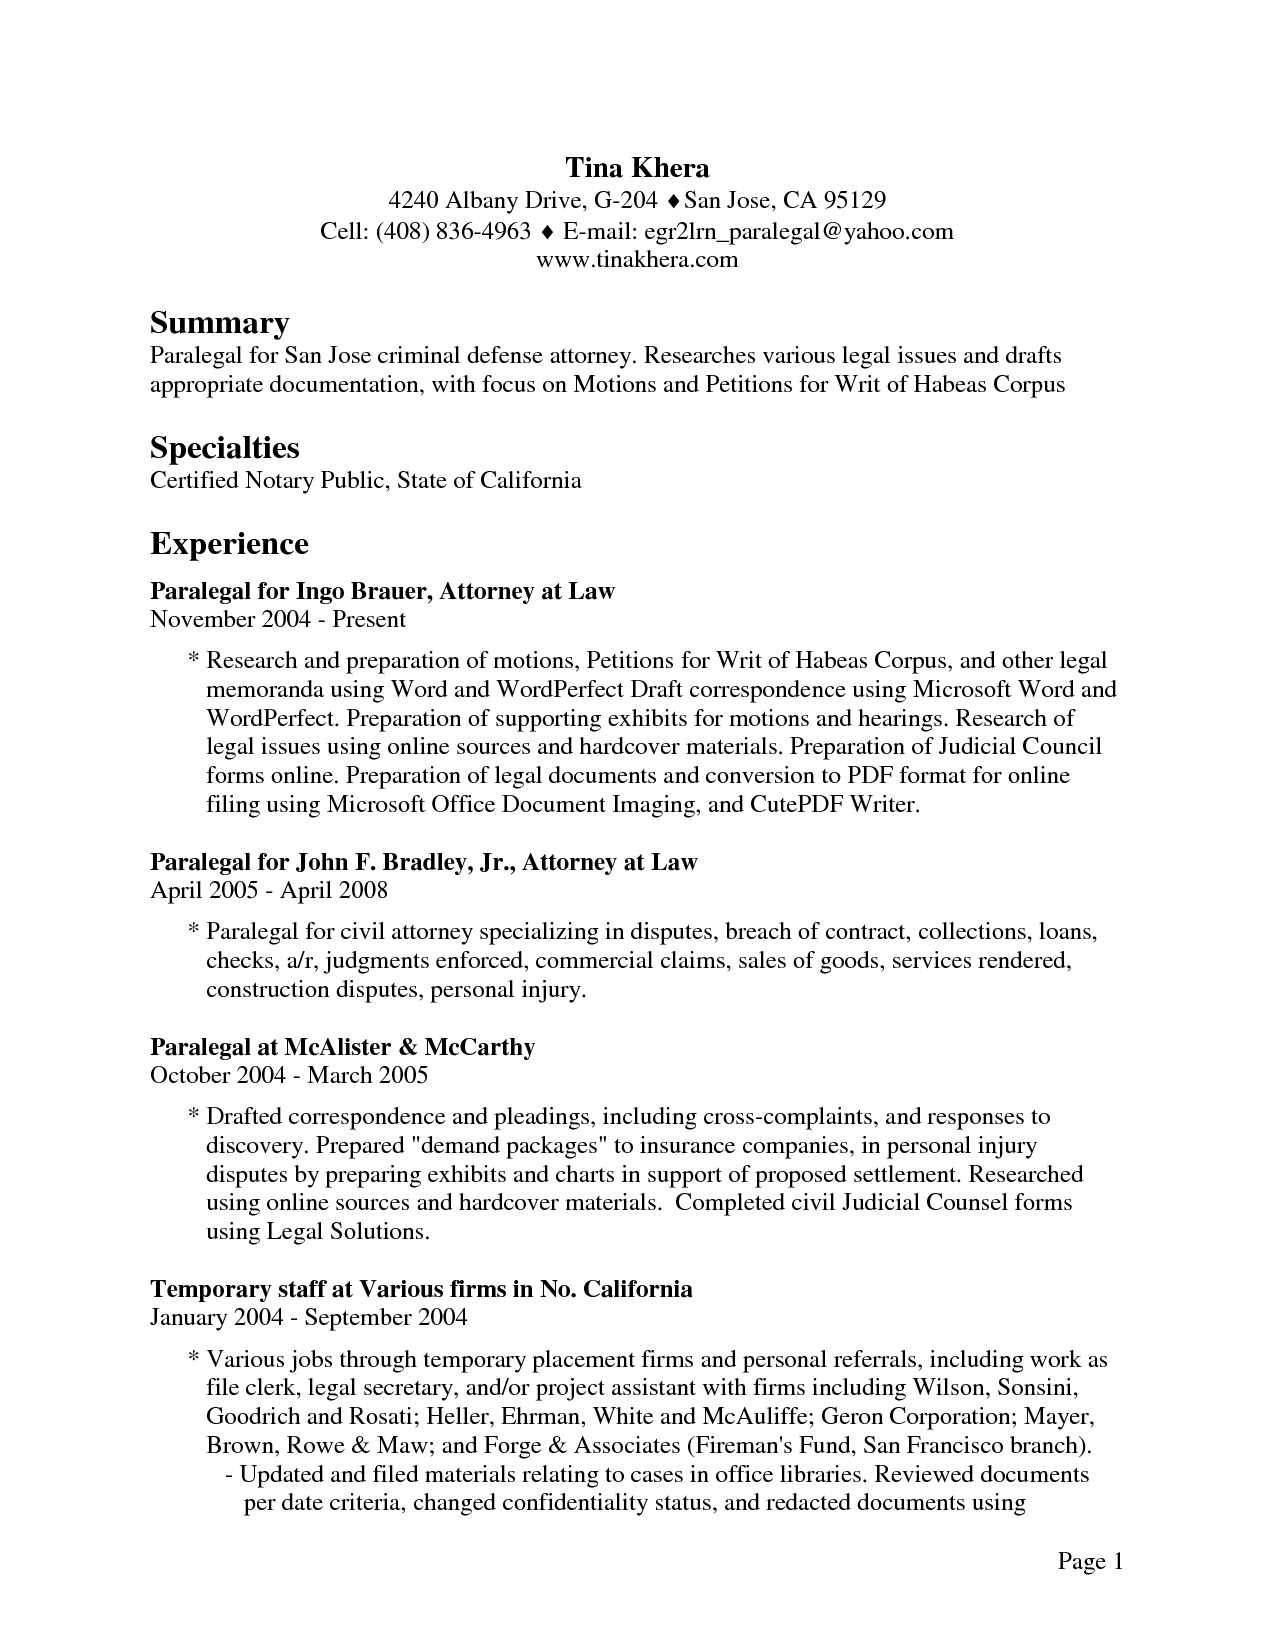 Homework Help | Ferguson Library attorney employment resume Writing ...